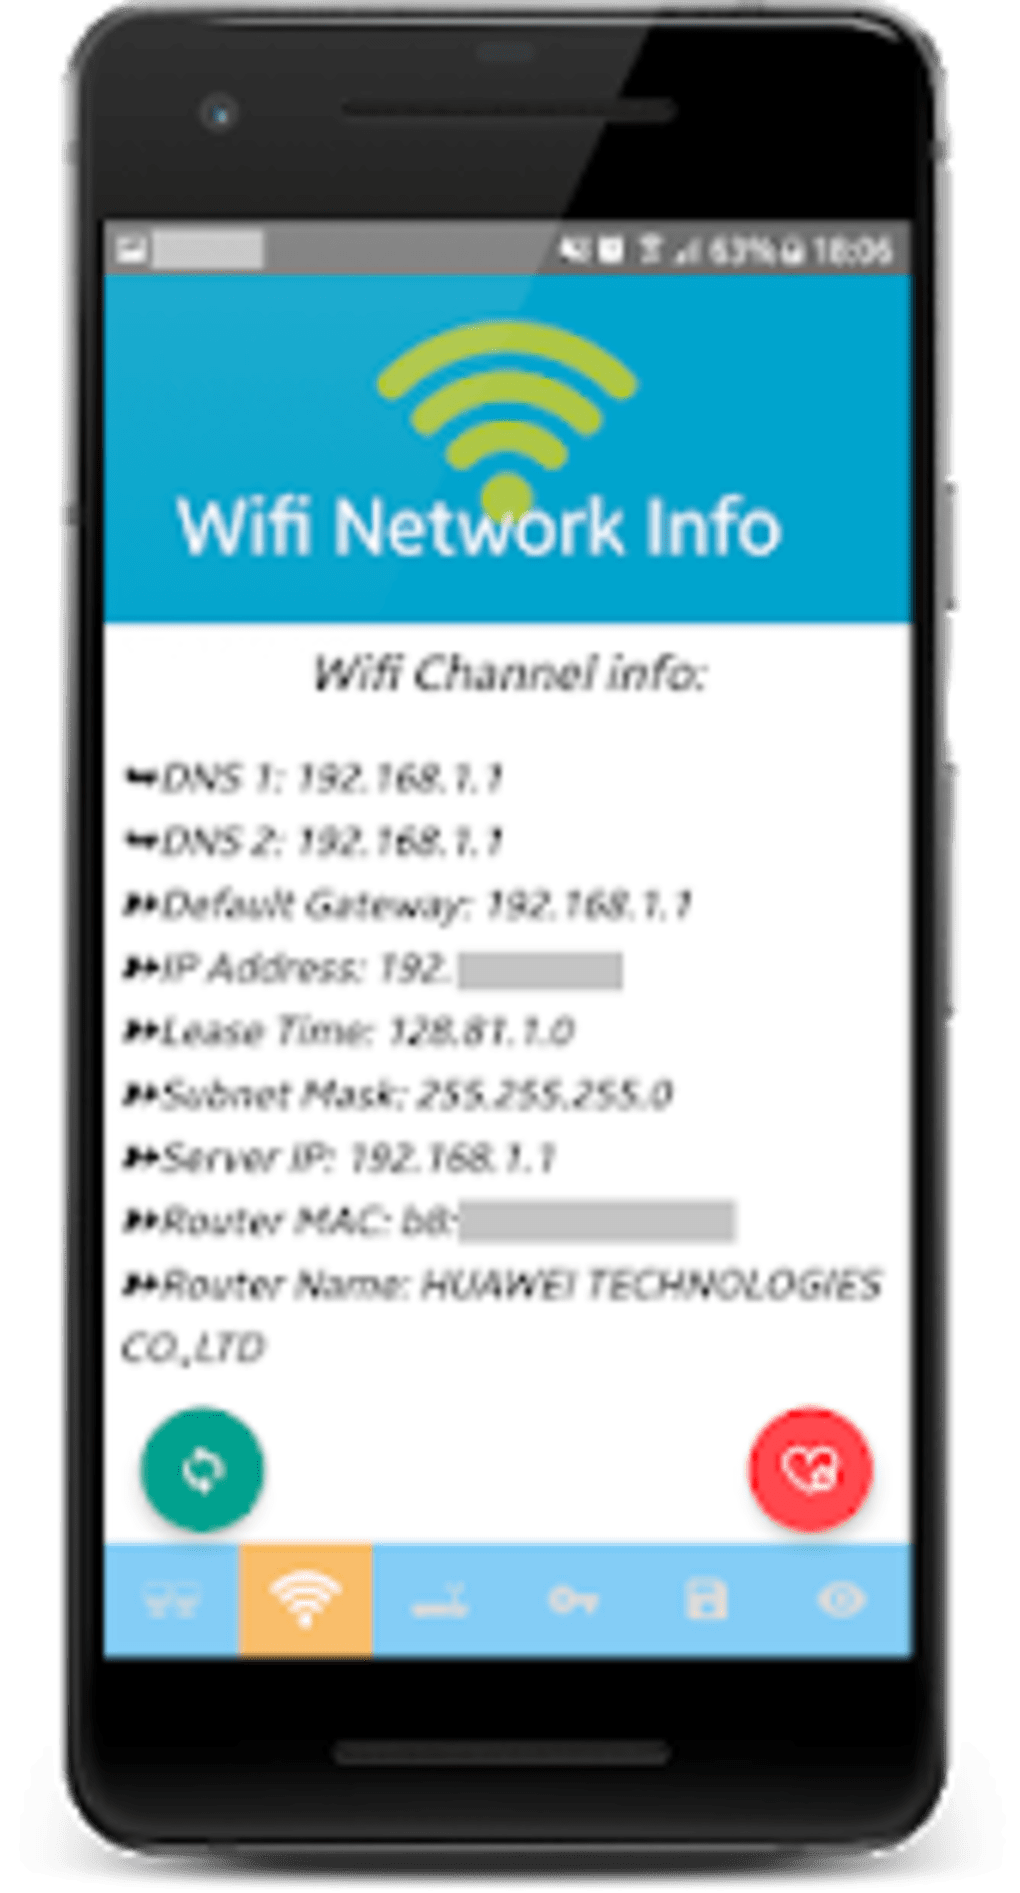 Any Router AutoLogin Admin 192168 for Android - Download